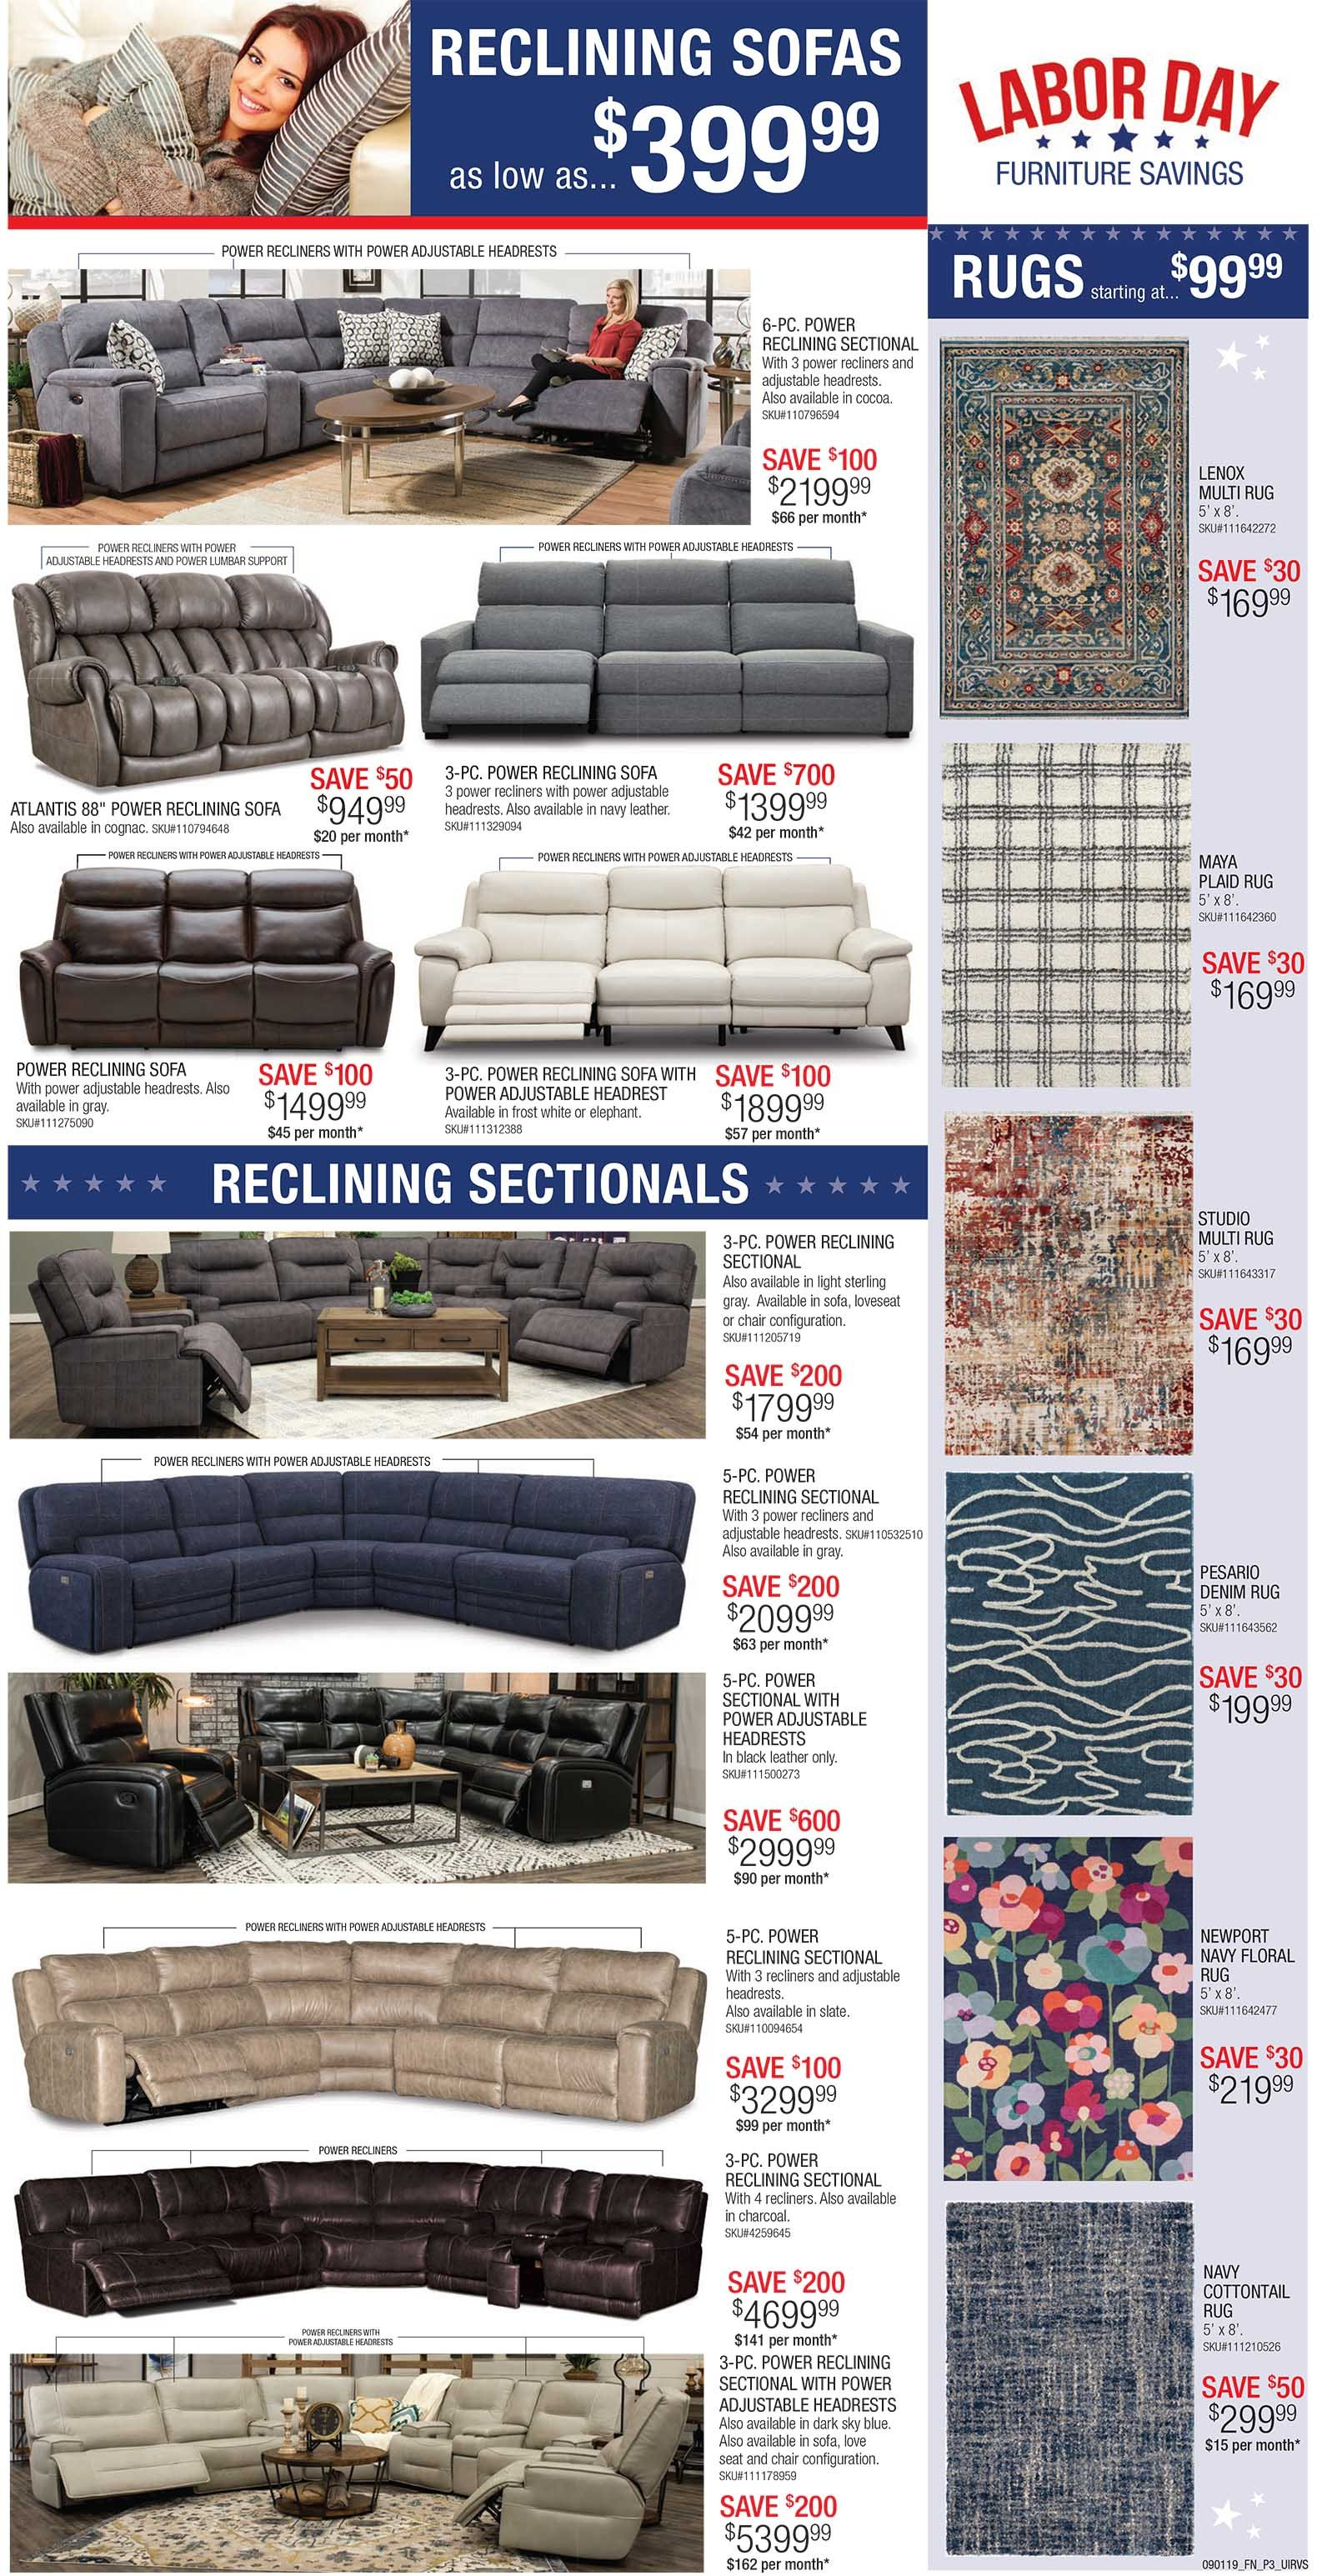 Labor Day Home Furnishings Sale At Rc Willey Plus